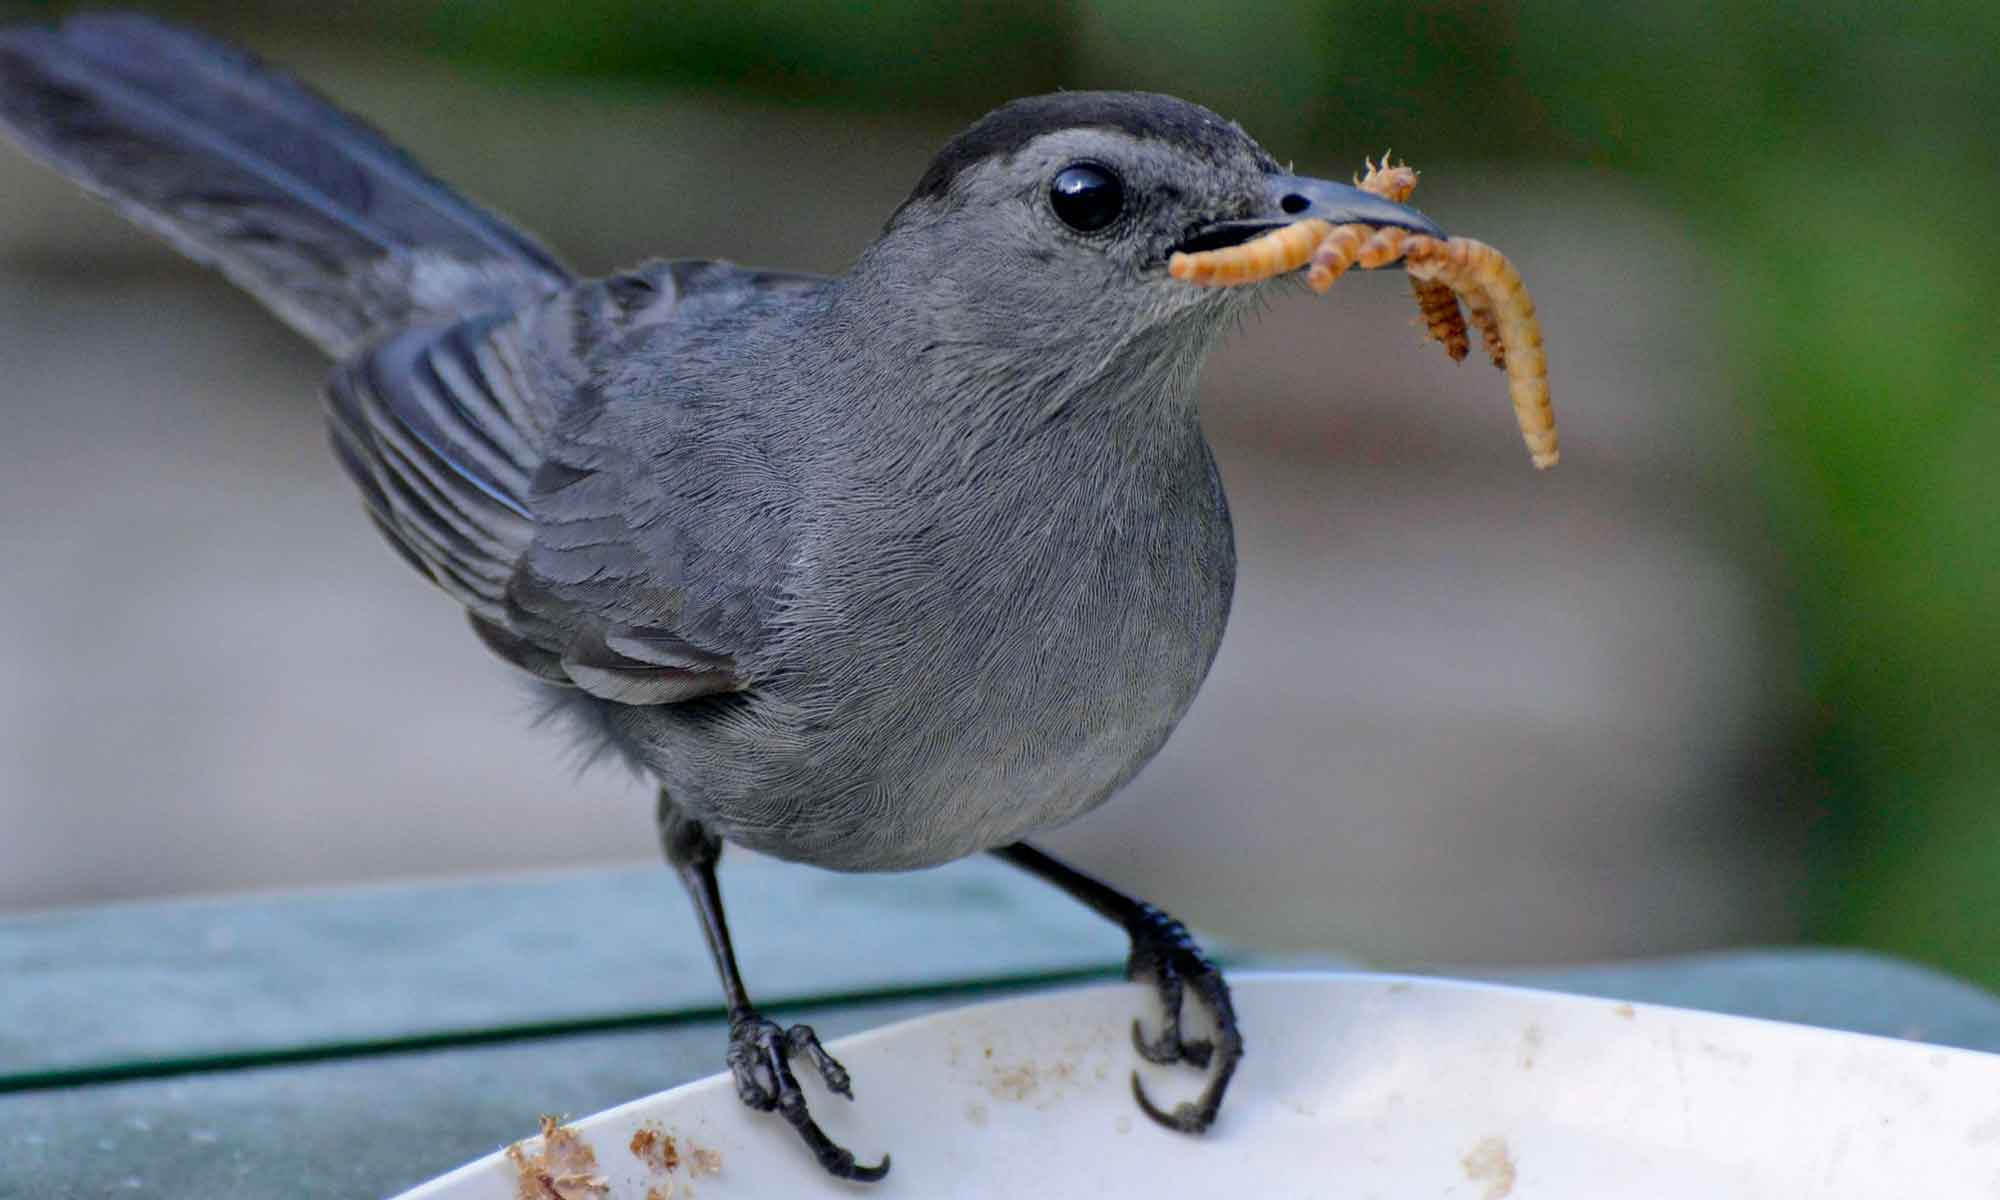 bird eating mealworms